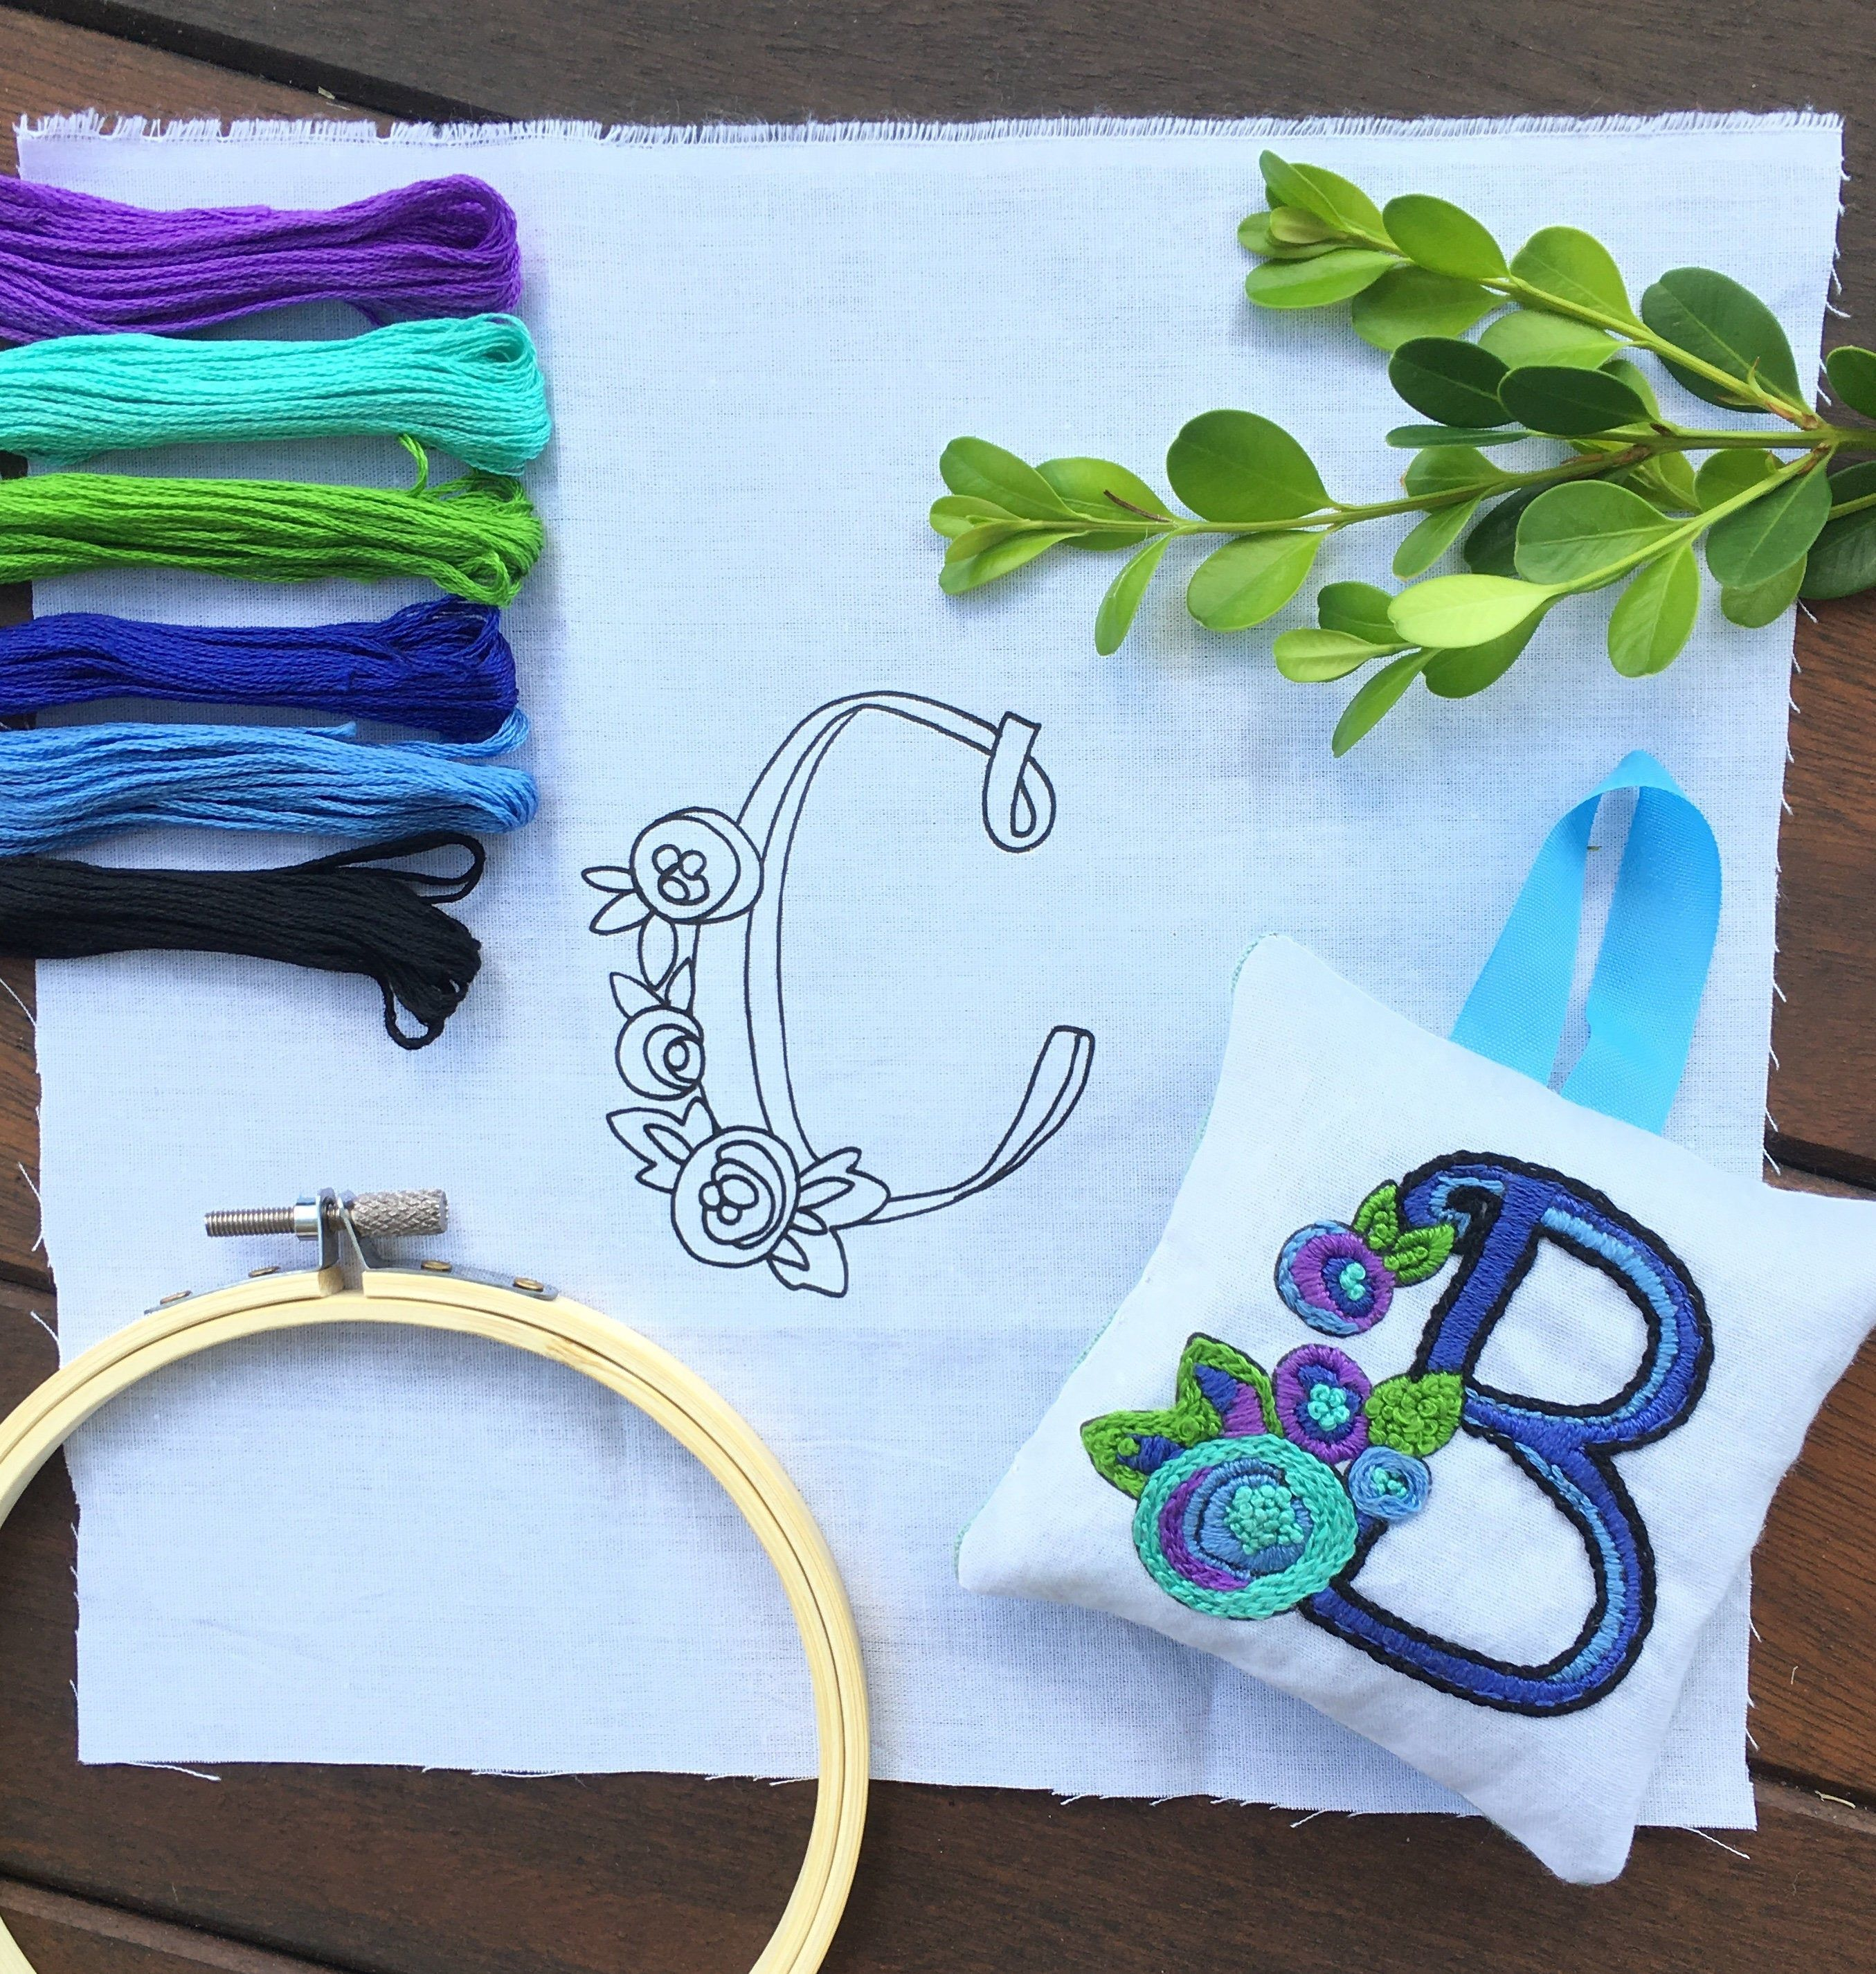 Embroidery Kit Monogram, DIY Sachet Embroidery Kit, Monogram Embroidery Kit for Beginners #colorpalettecopies